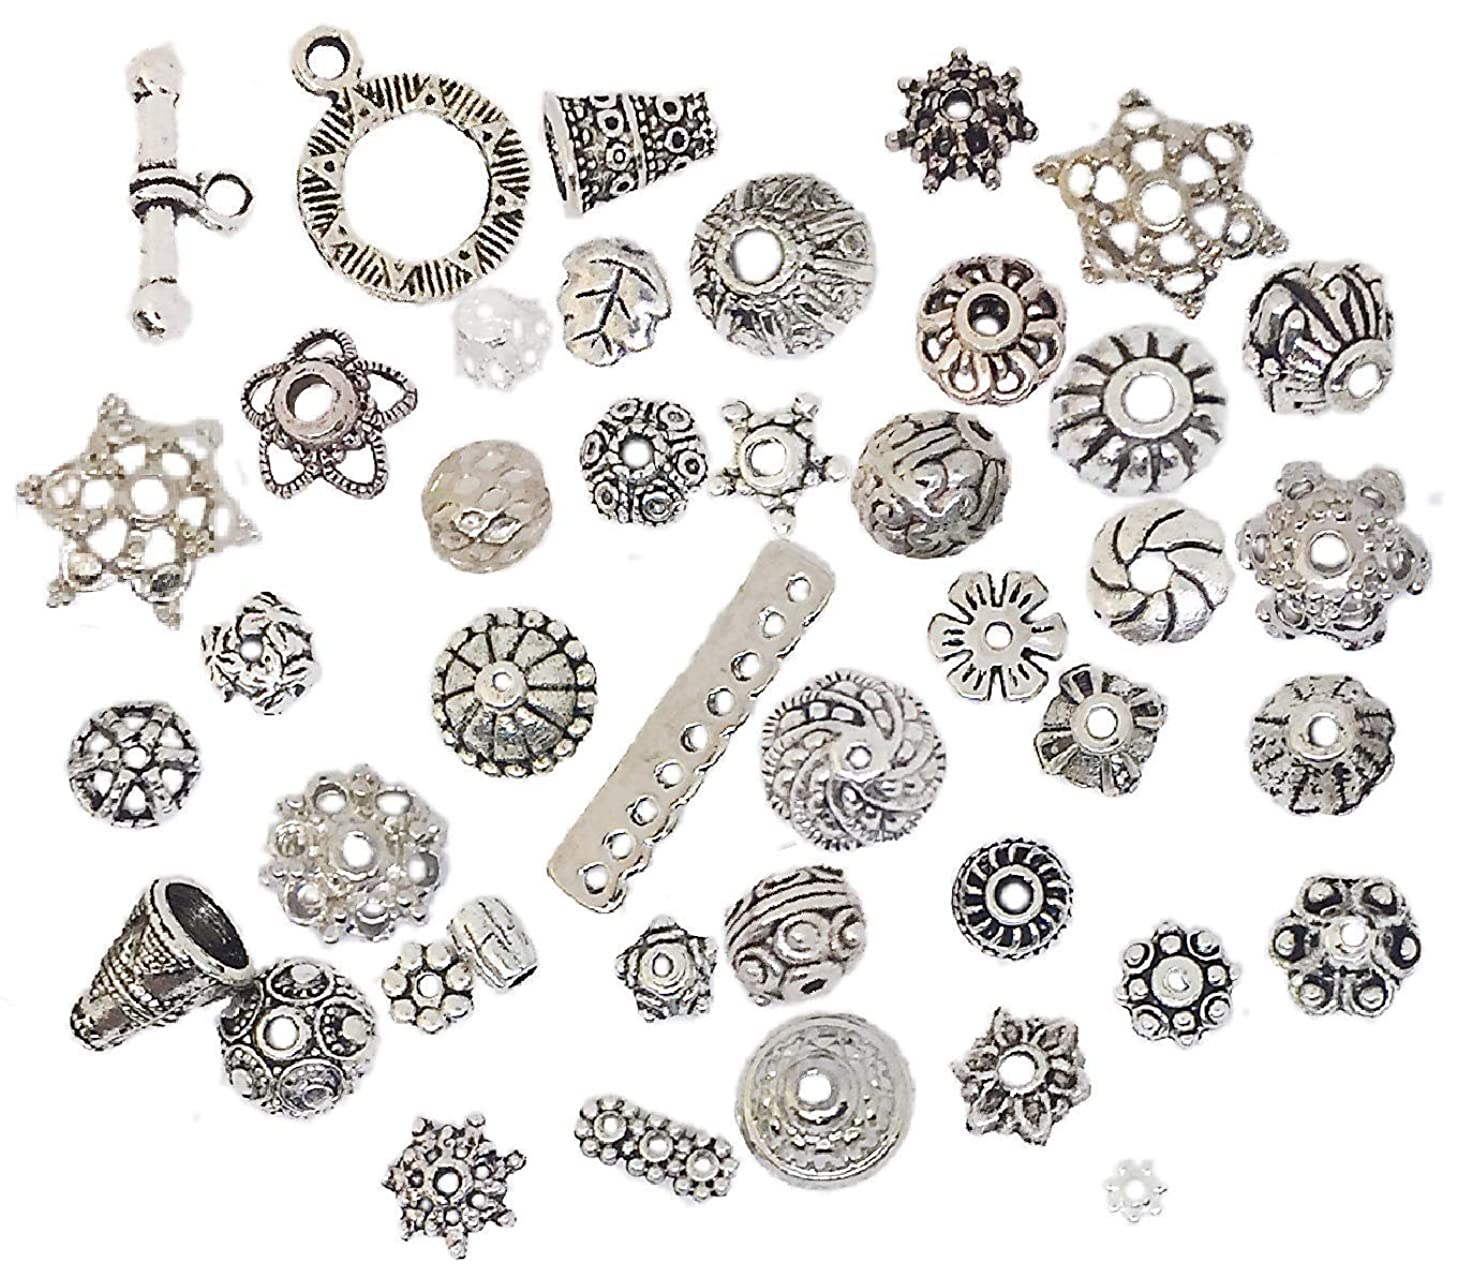 160-210pcs Bali Style Jewelry Making Metal Bead Caps Deluxe New Mix 100 Gram Tibetan Silver 25-35 Kind Style Shape